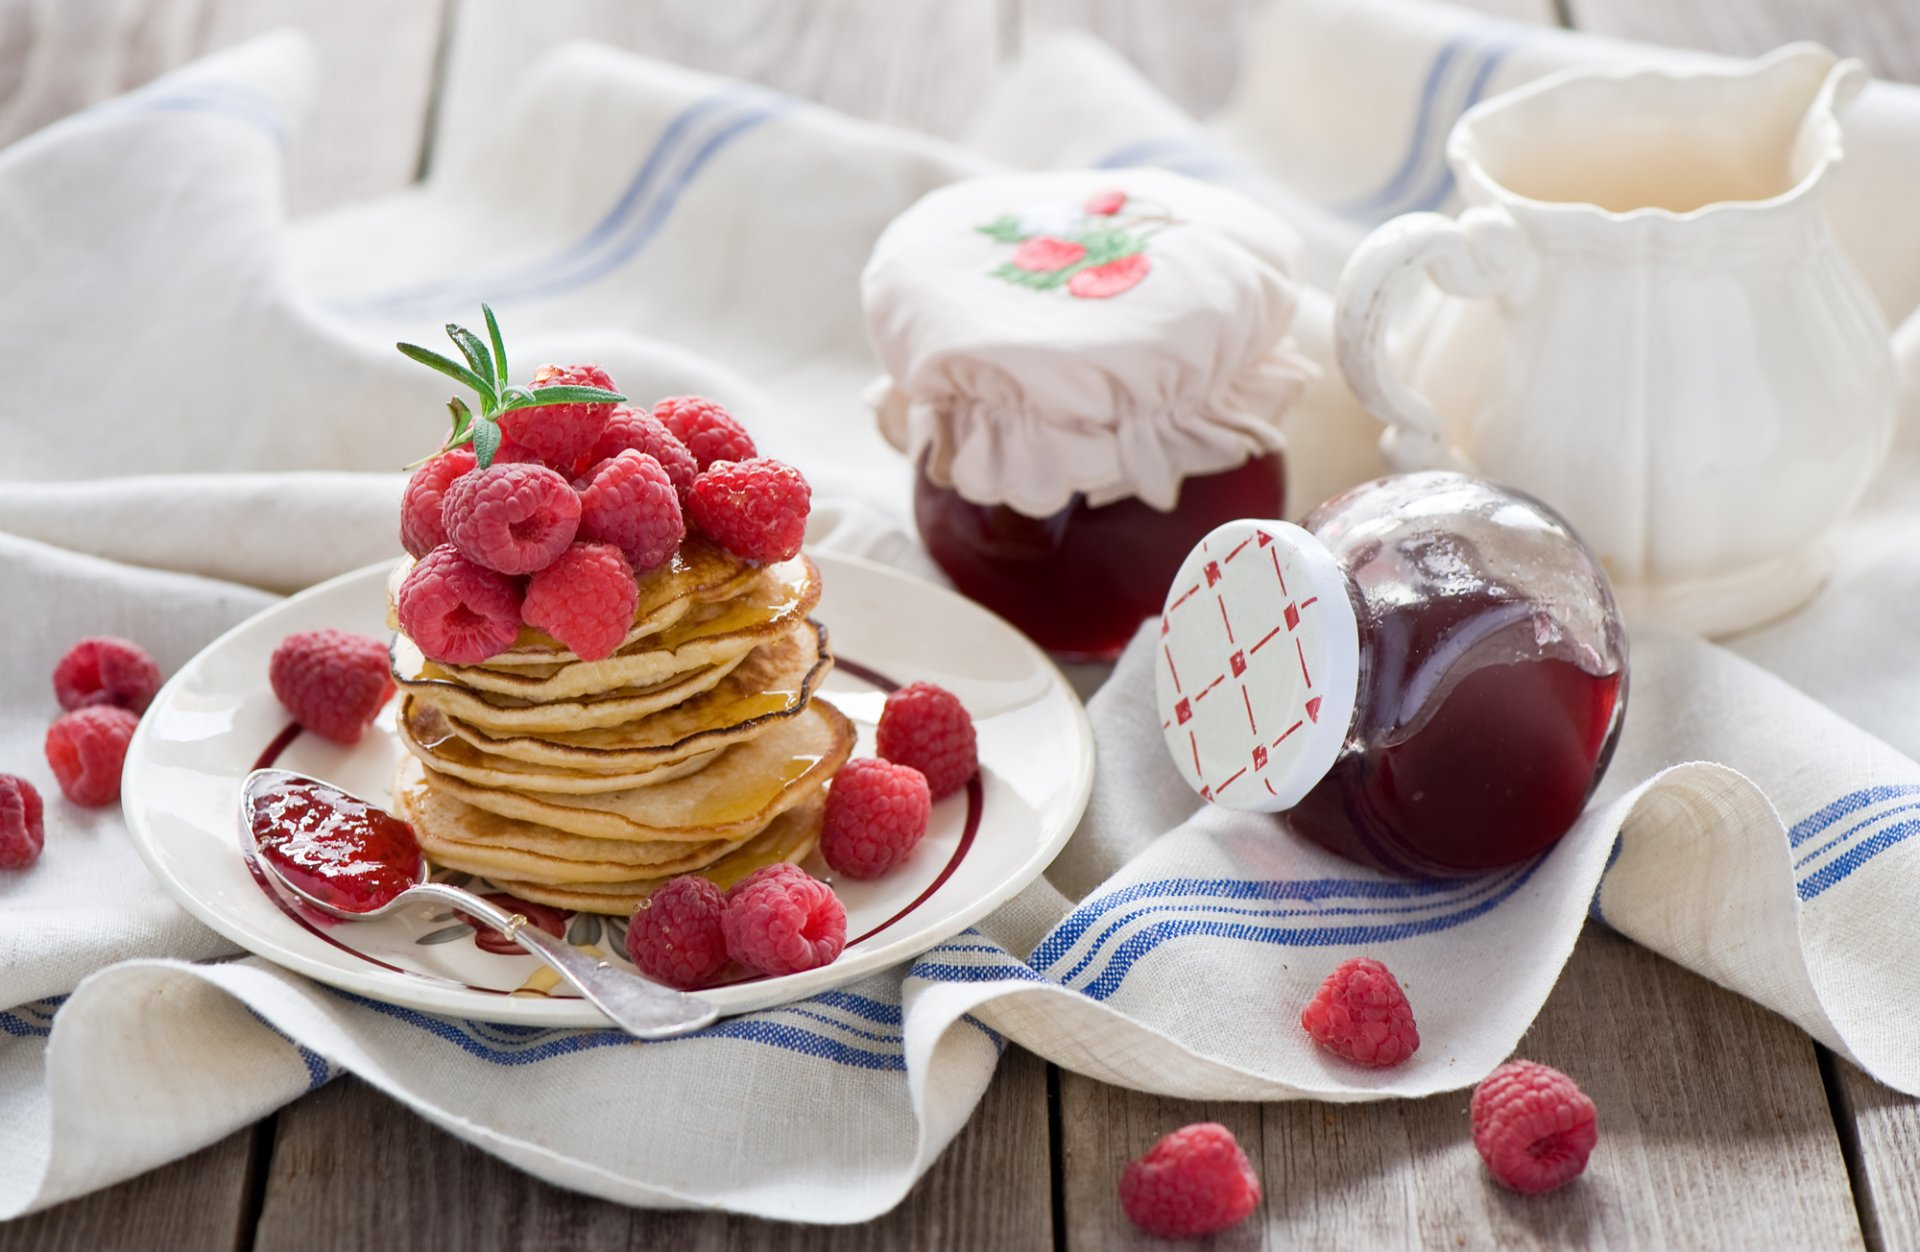 Food - Breakfast  Jam Pancake Raspberry Wallpaper